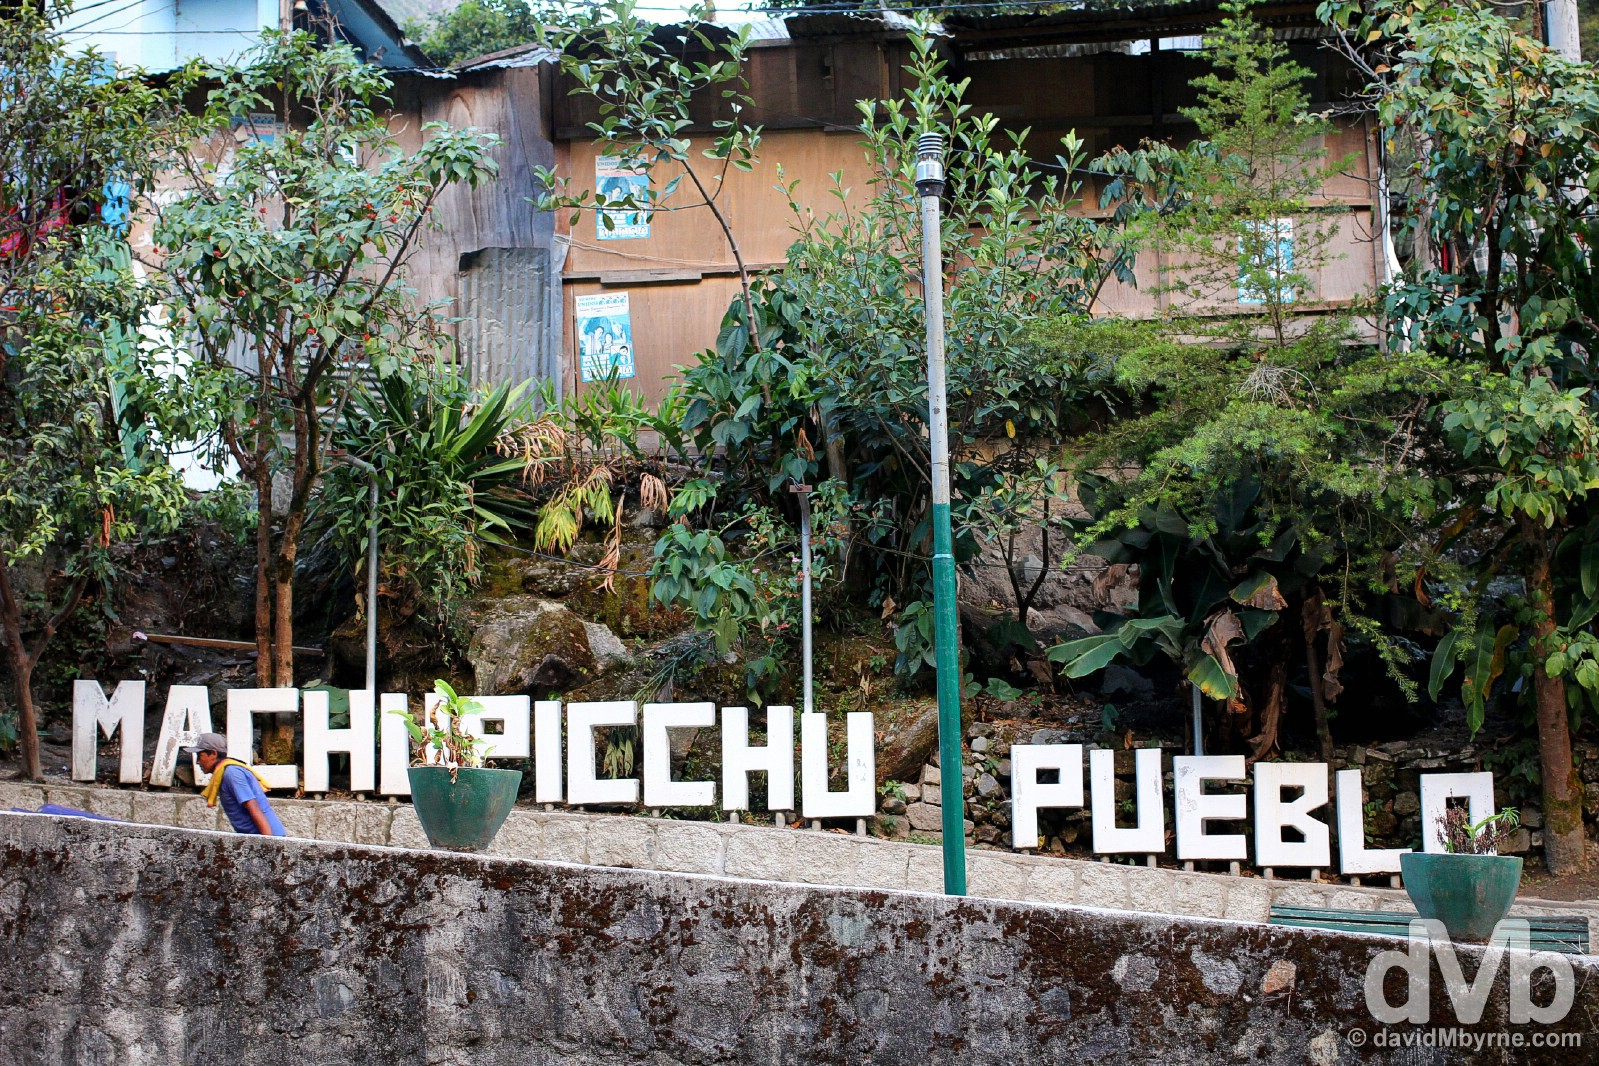 Machu Picchu Peublo/Aguas Calientes, Peru. August 14, 2015.